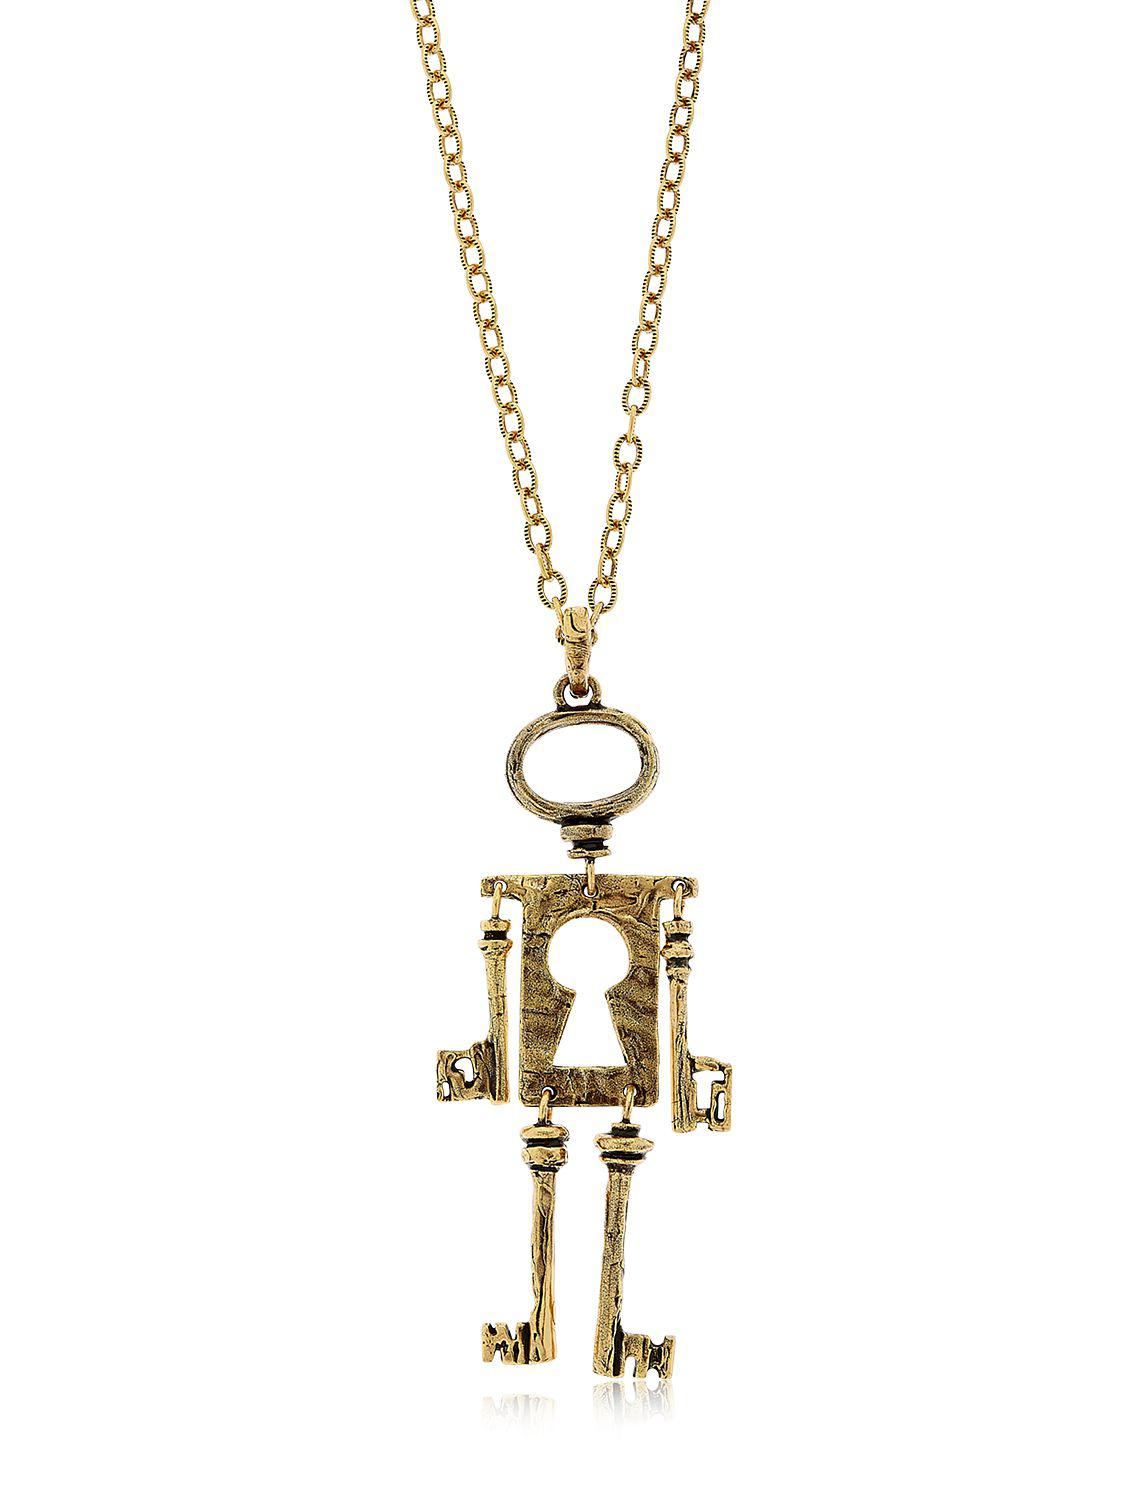 Alcozer & J Chiave Mossa Pendant Necklace in Gold (Metallic)